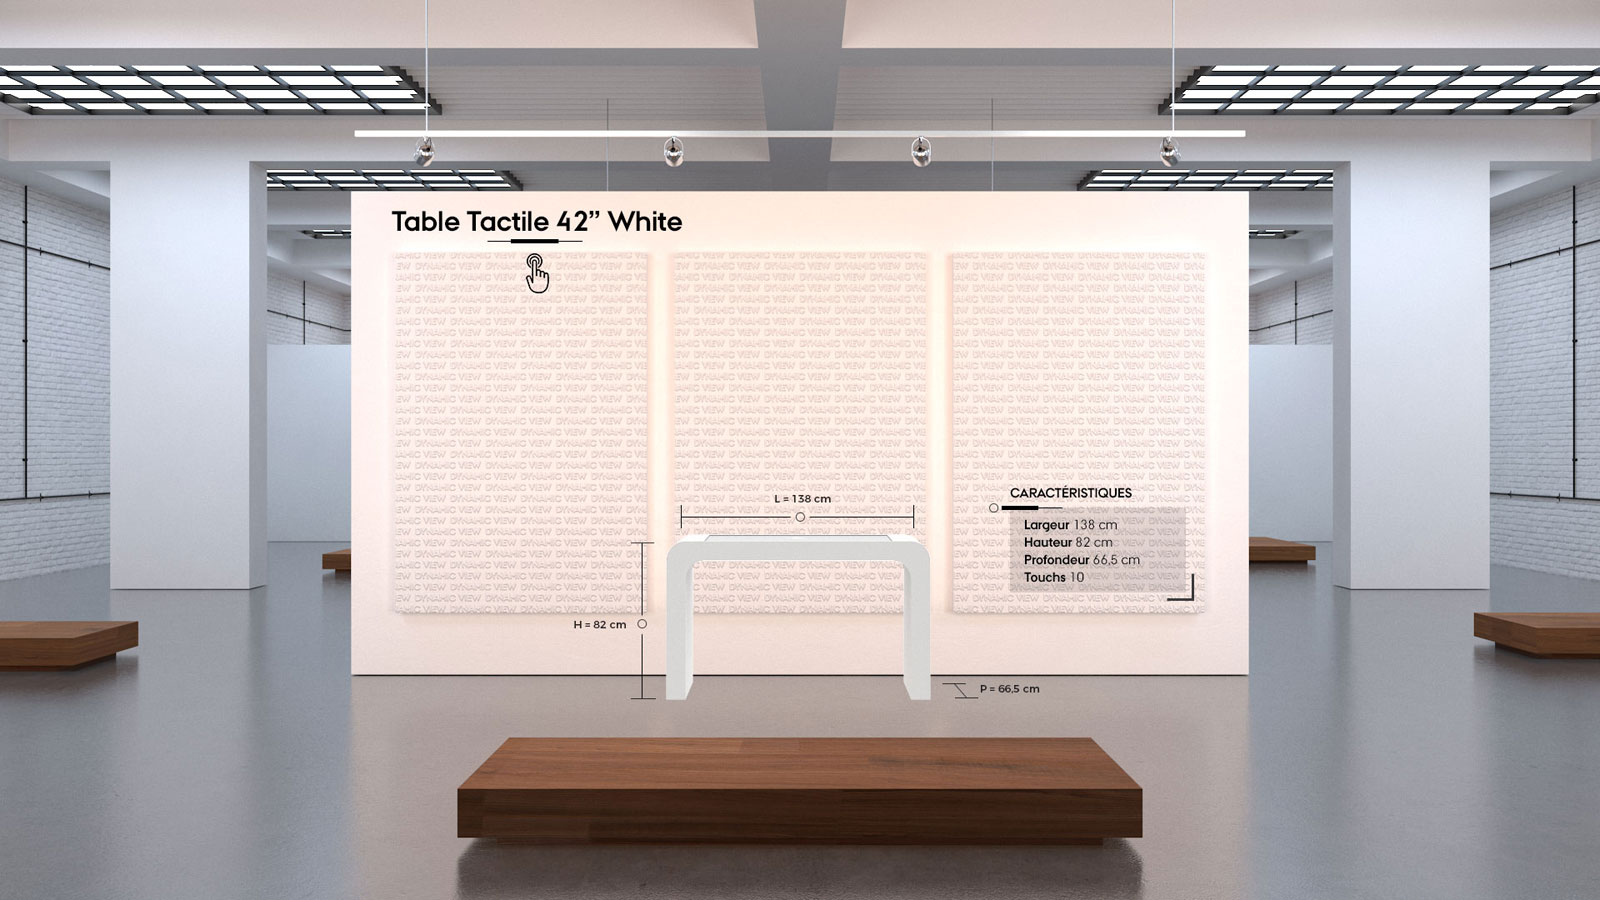 34 Table Tactile 42'' White